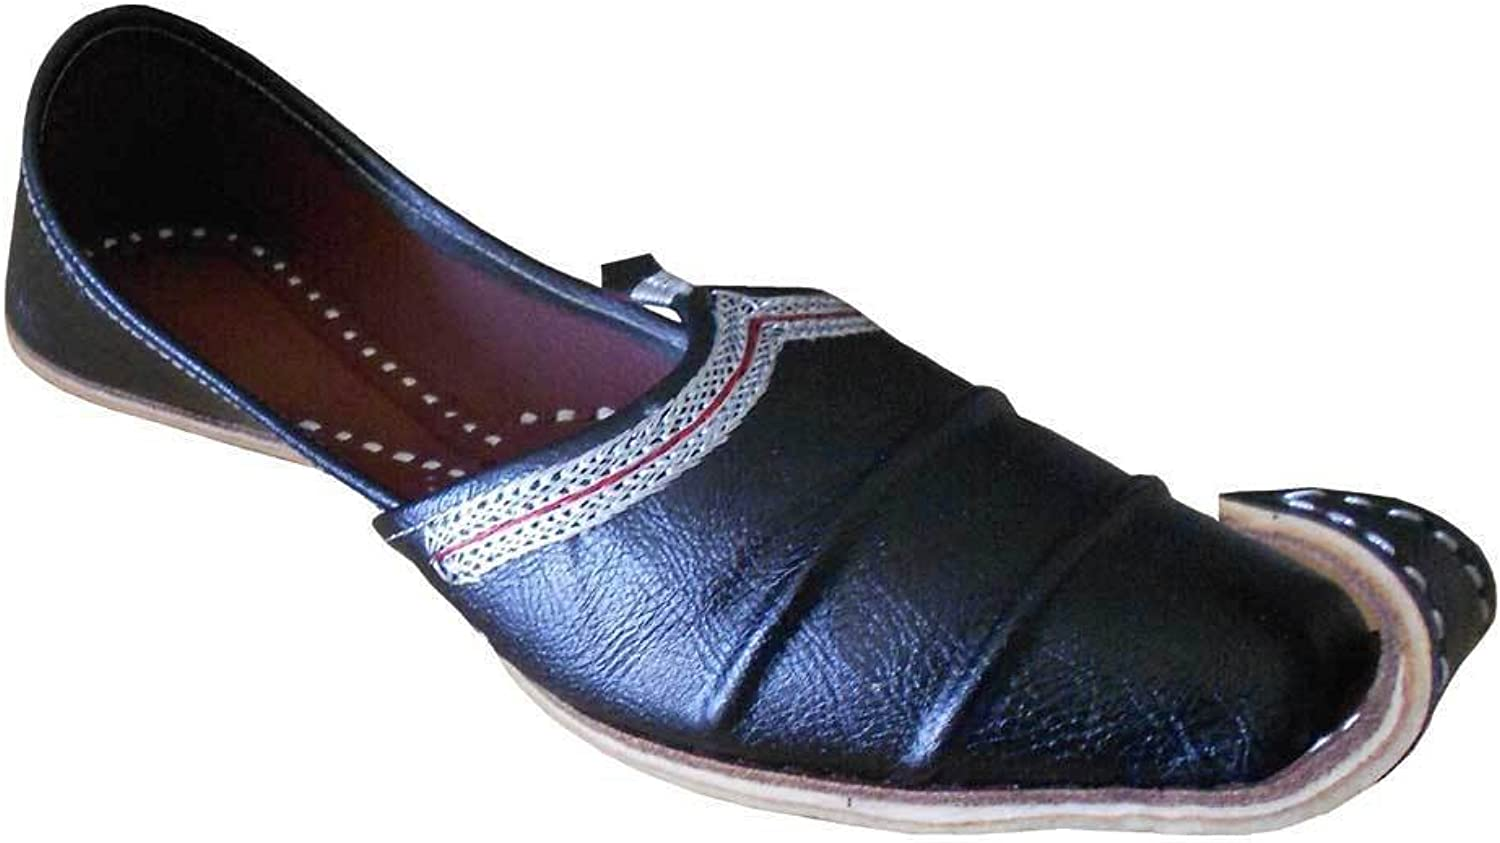 Kalra Creations Men's Traditonal Indian Faux Leather Loafer Flats shoes